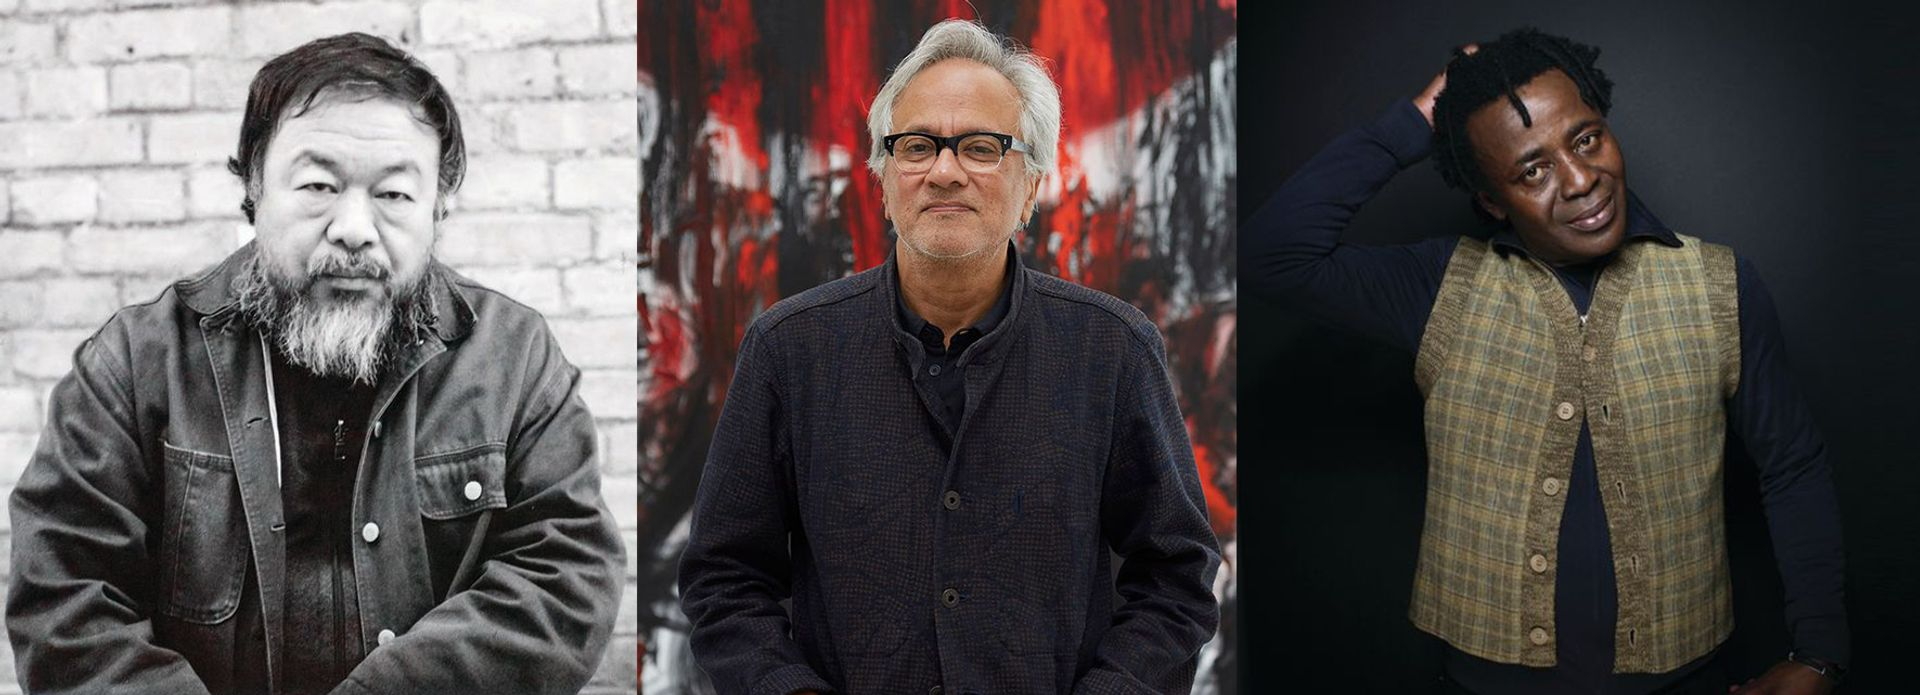 Ai Weiwei, Anish Kapoor and John Akomfrah are among 31  artists participating in the Bangkok Art Biennale who have signed a letter condemning state violence against democracy protests in Thailand ©Photos: Alfred Weidinger; courtesy of Lisson Gallery; Victoria Will/Invision/AP Images